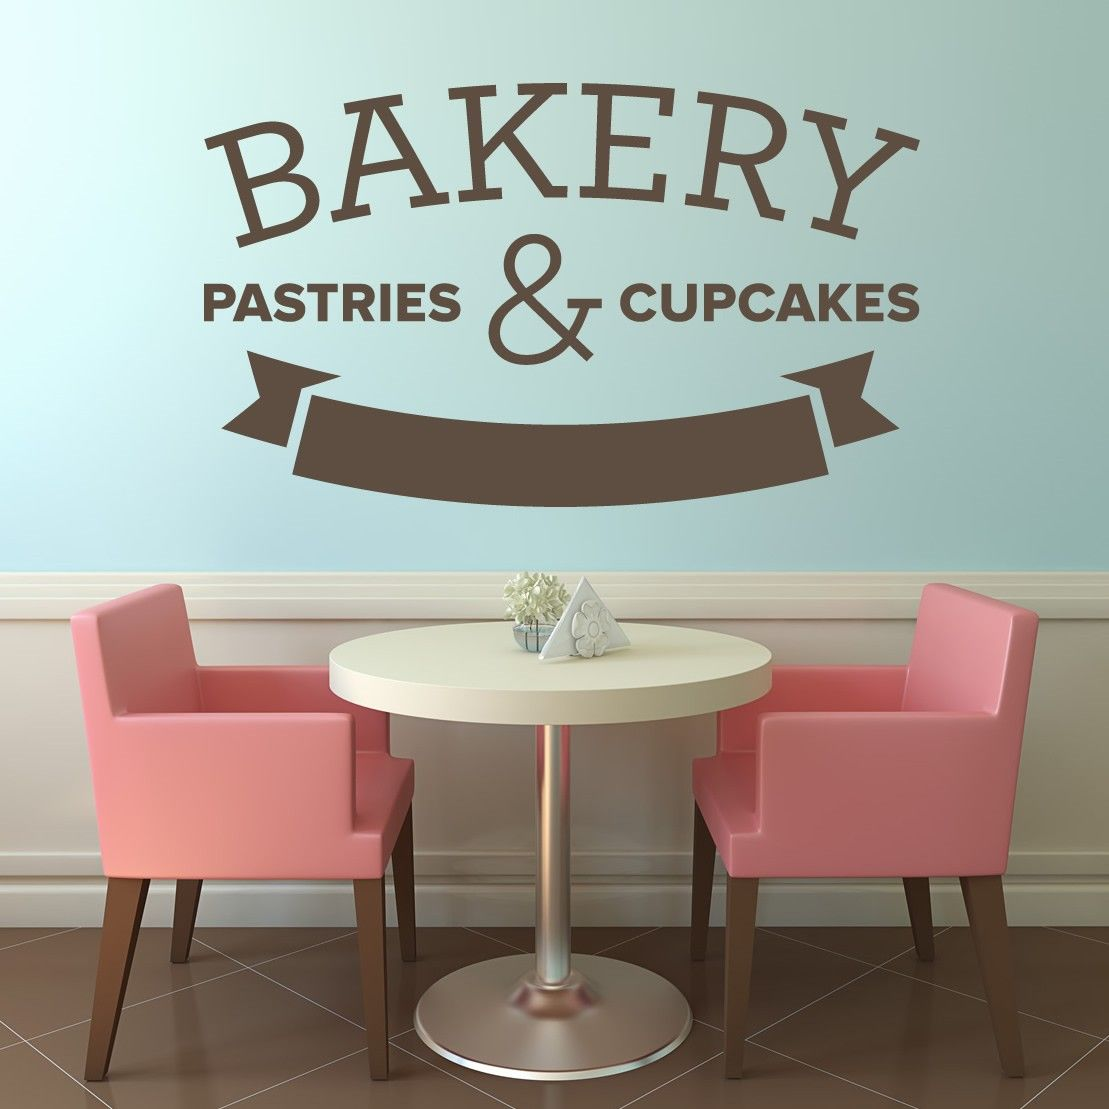 Bakery Patries and Cupcakes Cafe Kitchen Wall Art Decal Wall ...